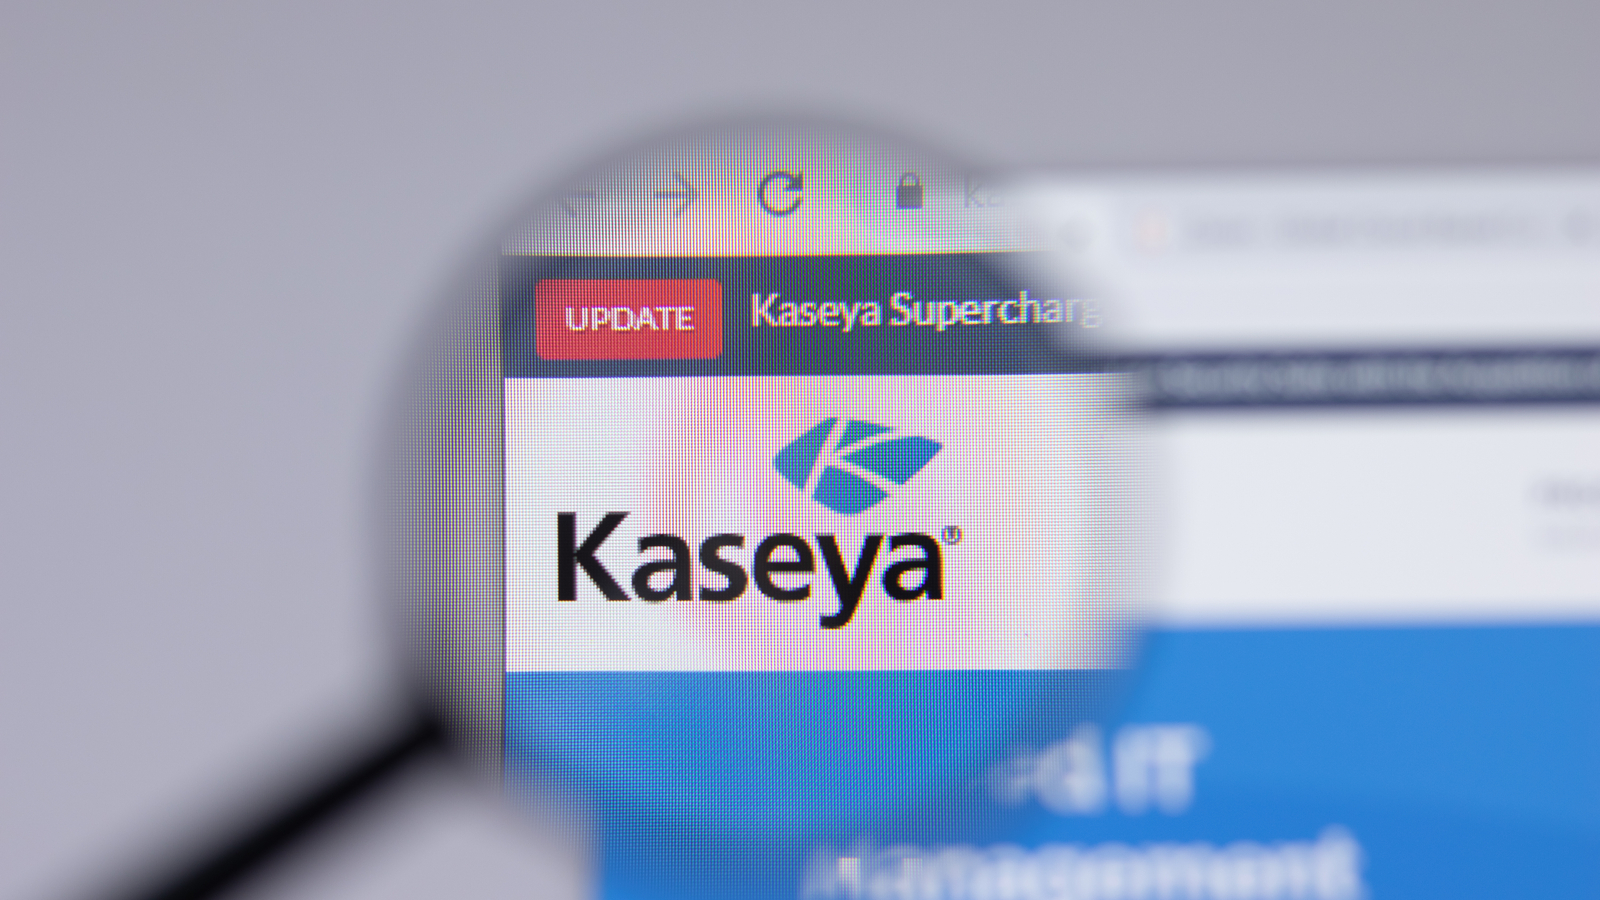 Kaseya ransomware attack: Up to 1,500 organisations hit in supply chain hack